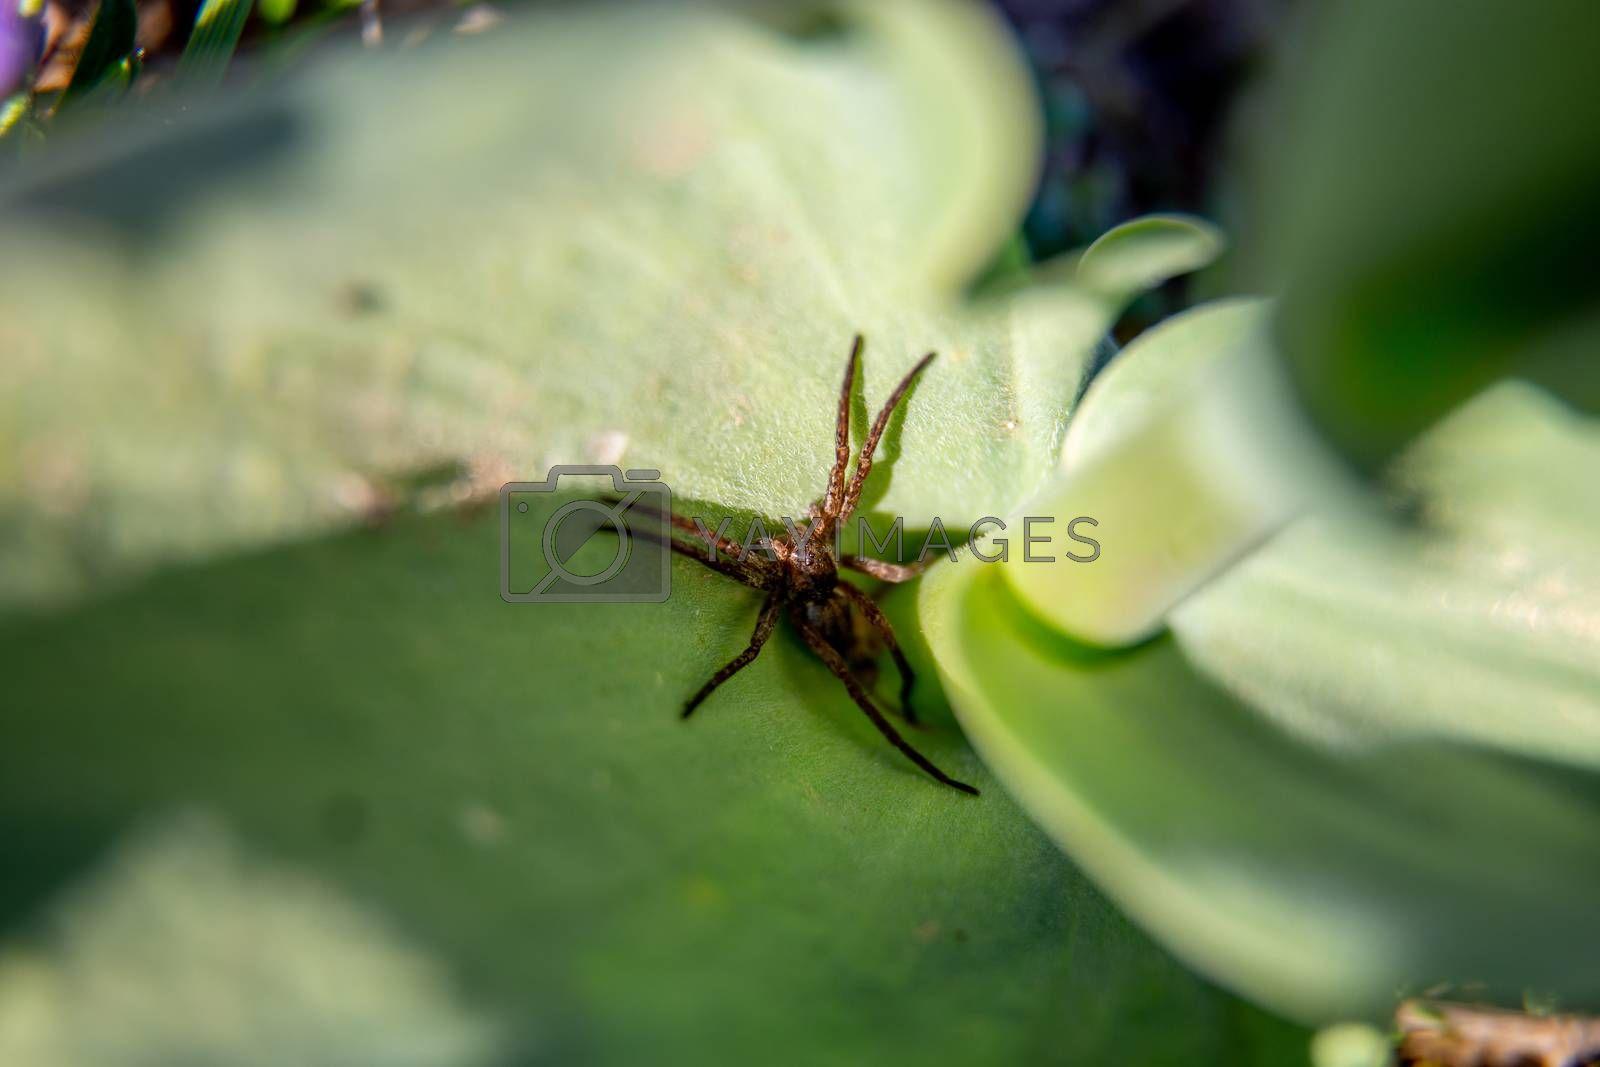 Long legged spider on green leaf in Latvia. Close-up of spider sitting on green leaf.